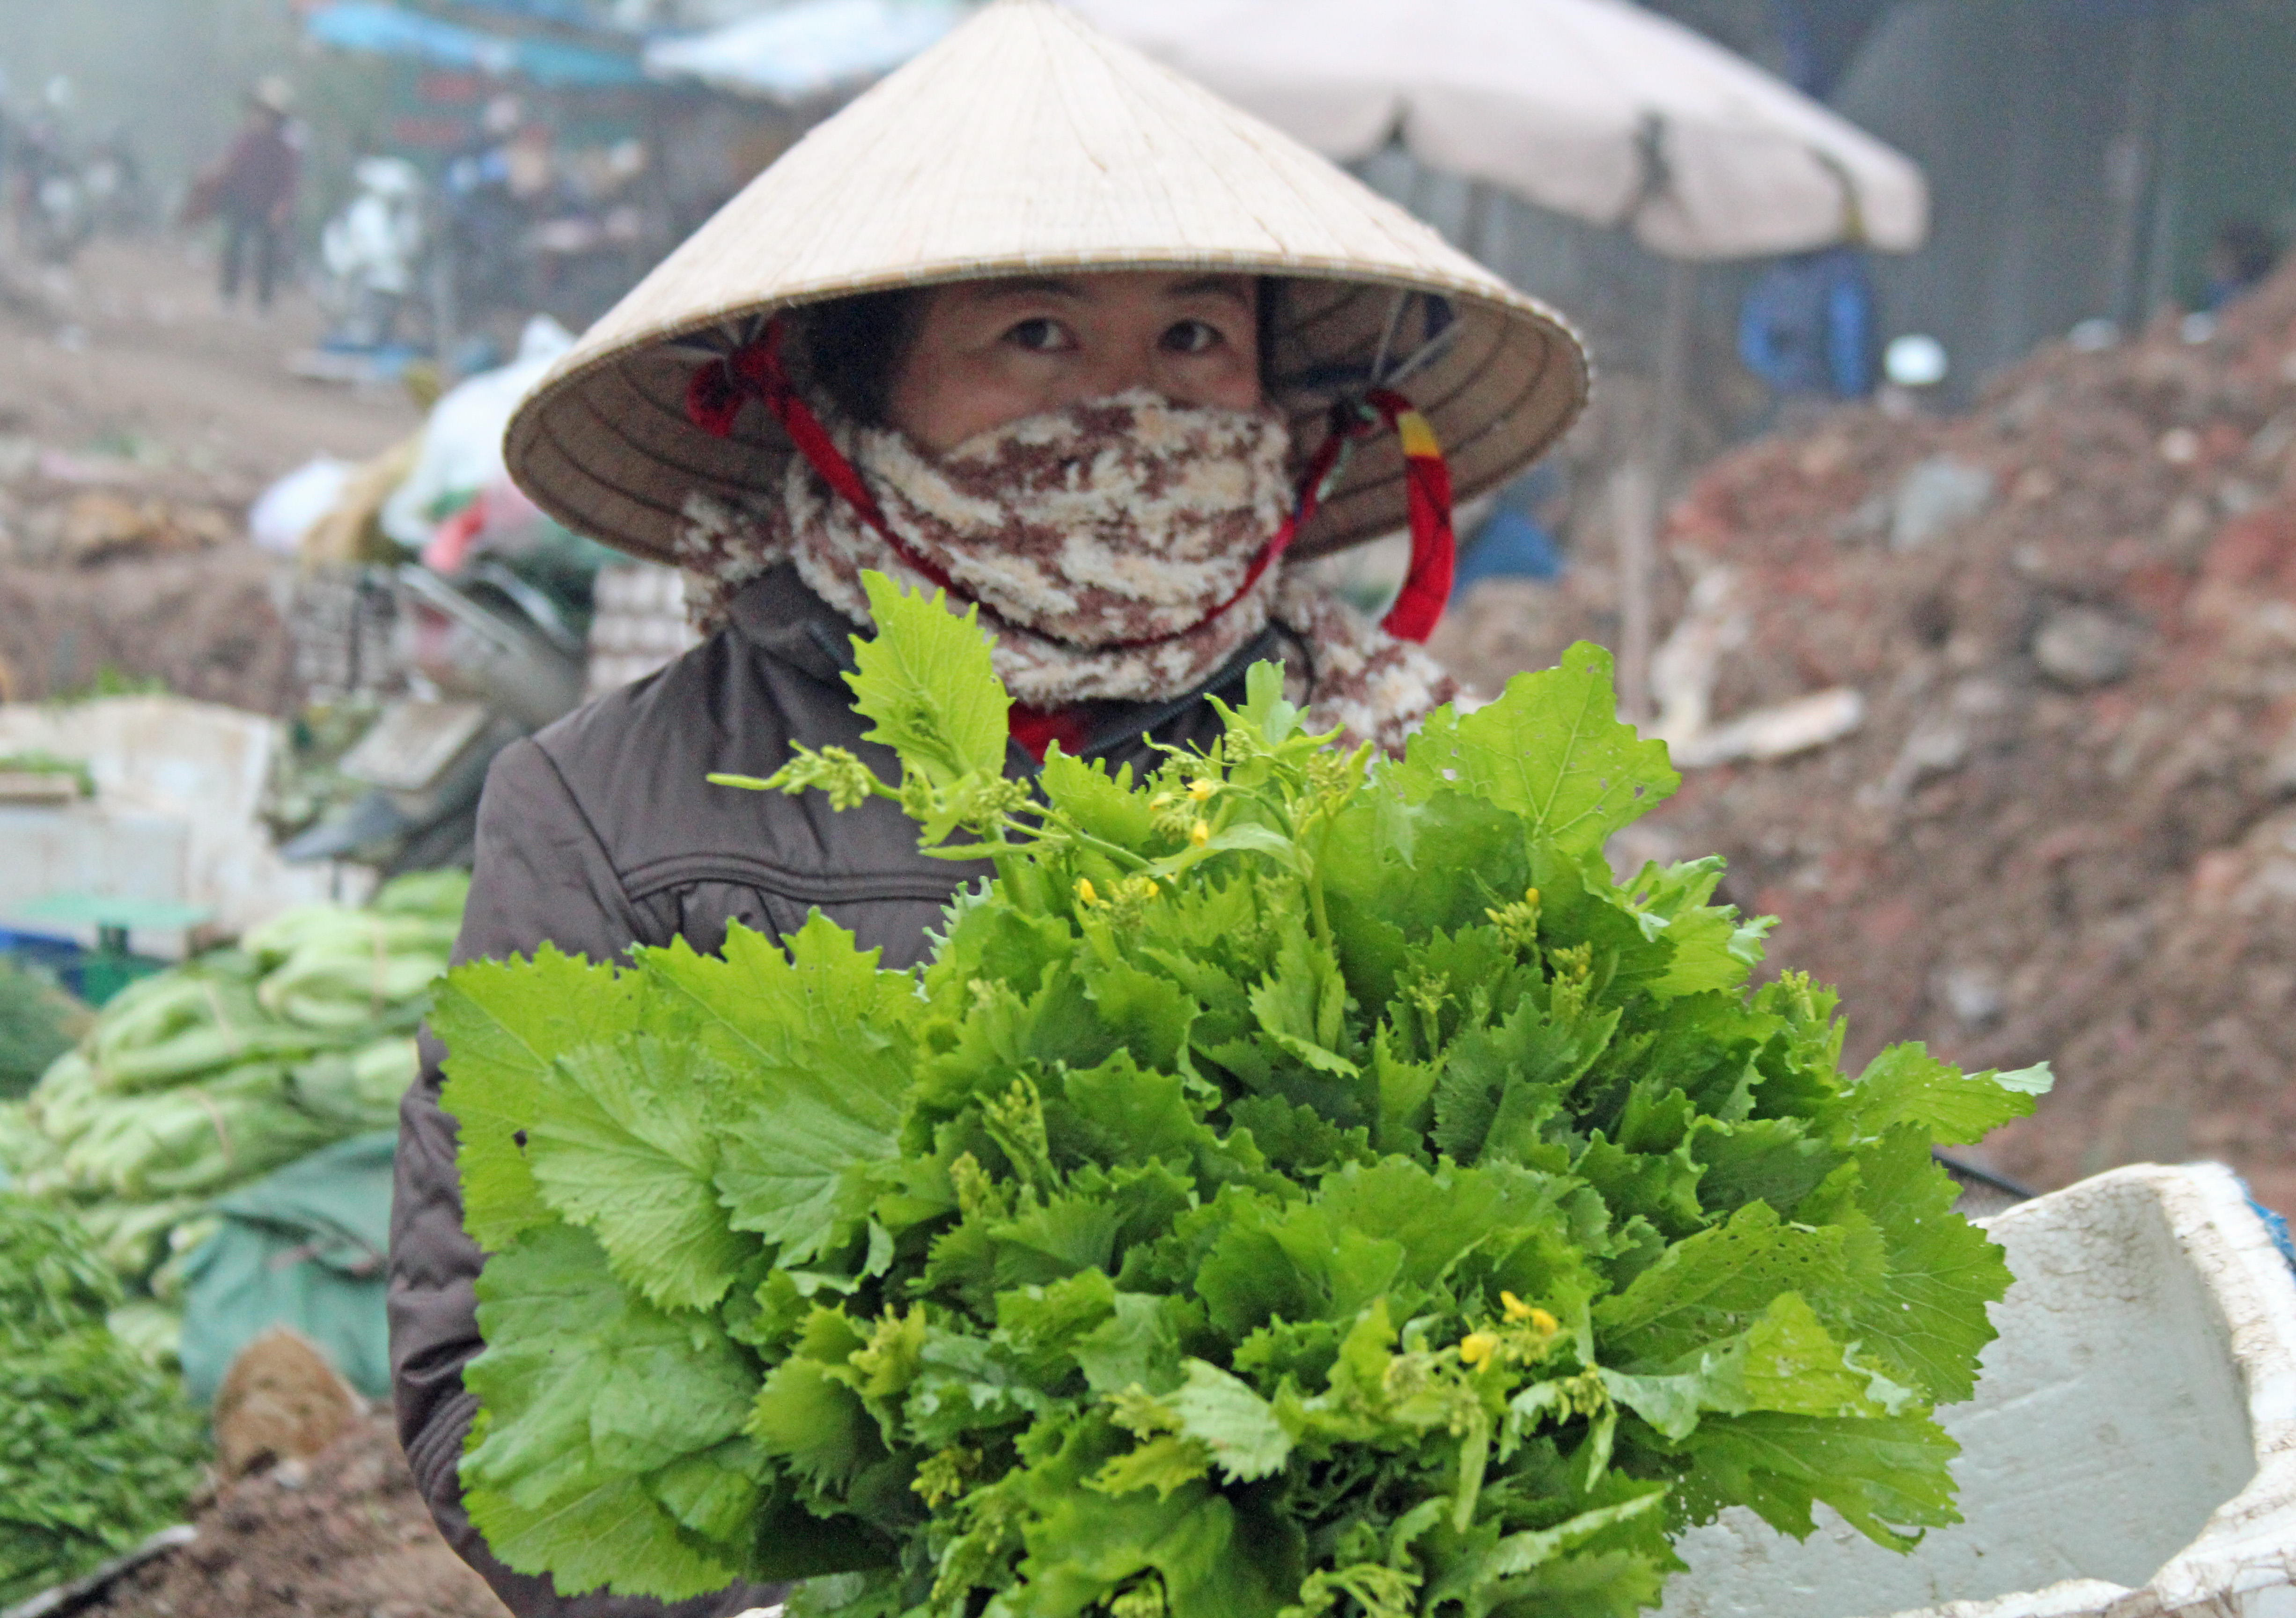 A daily morning market in Dien Bien Phu Province has a variety of produce. Photo by Larisa Epatko/PBS NewsHour